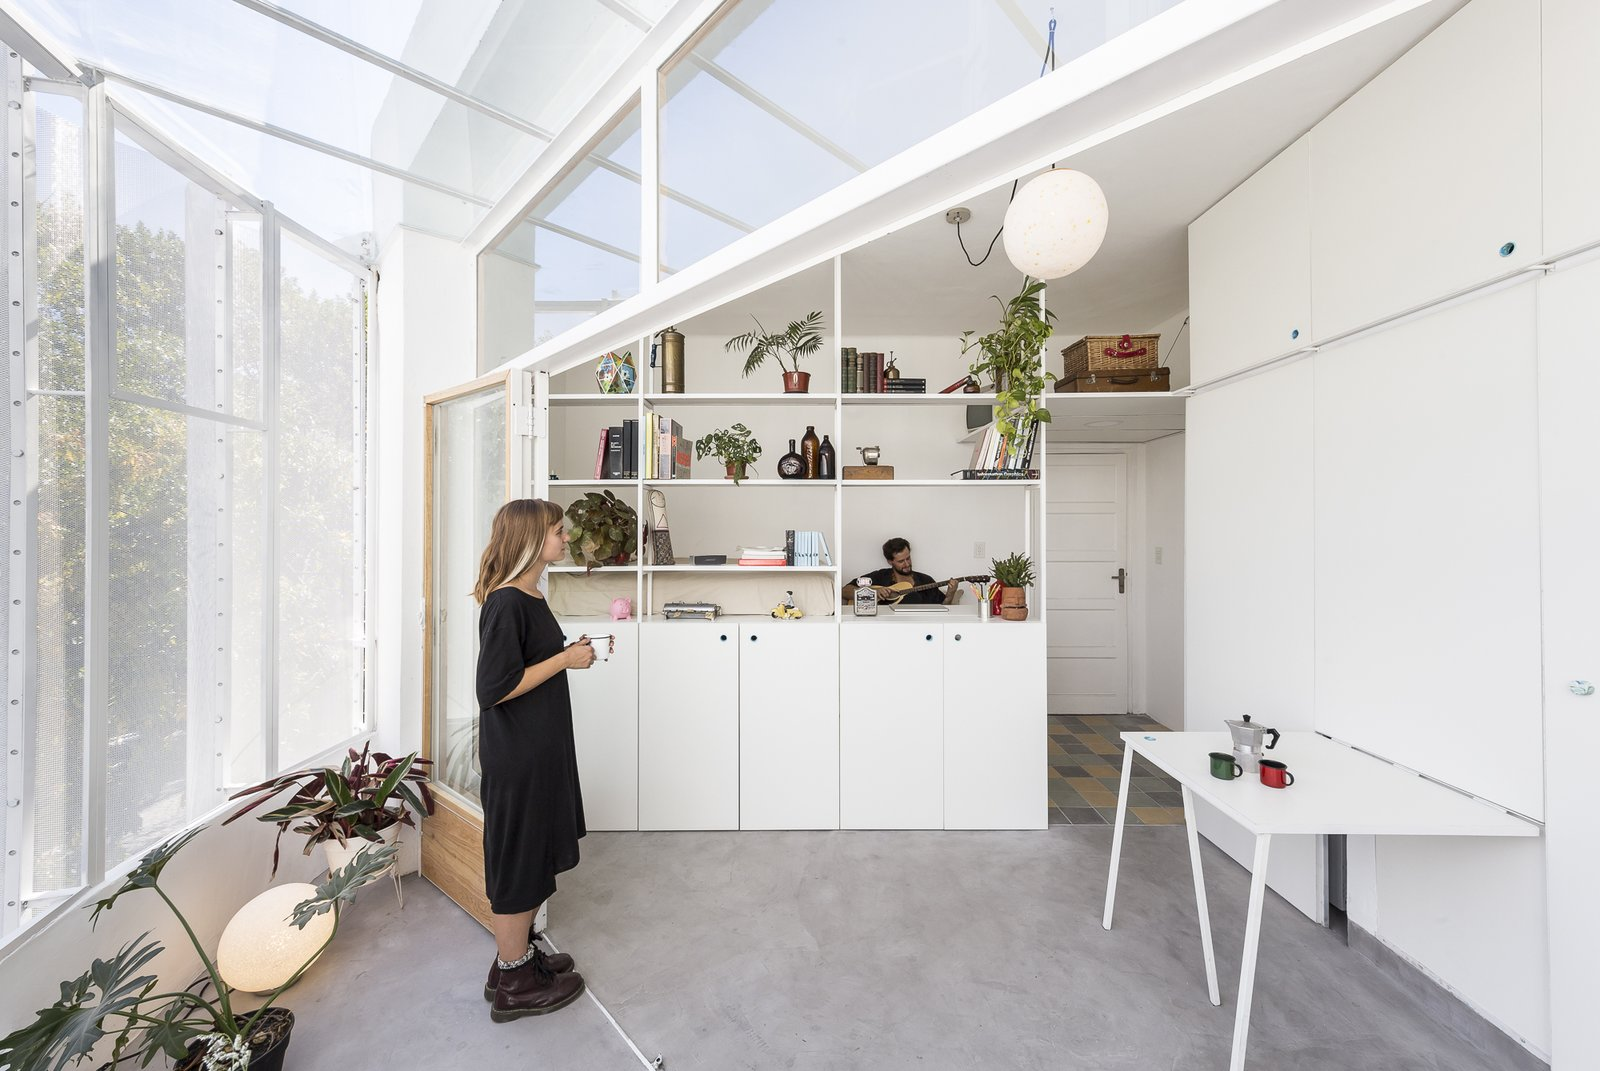 A Perforated Balcony Brings Ample Light Into a Tiny Abode